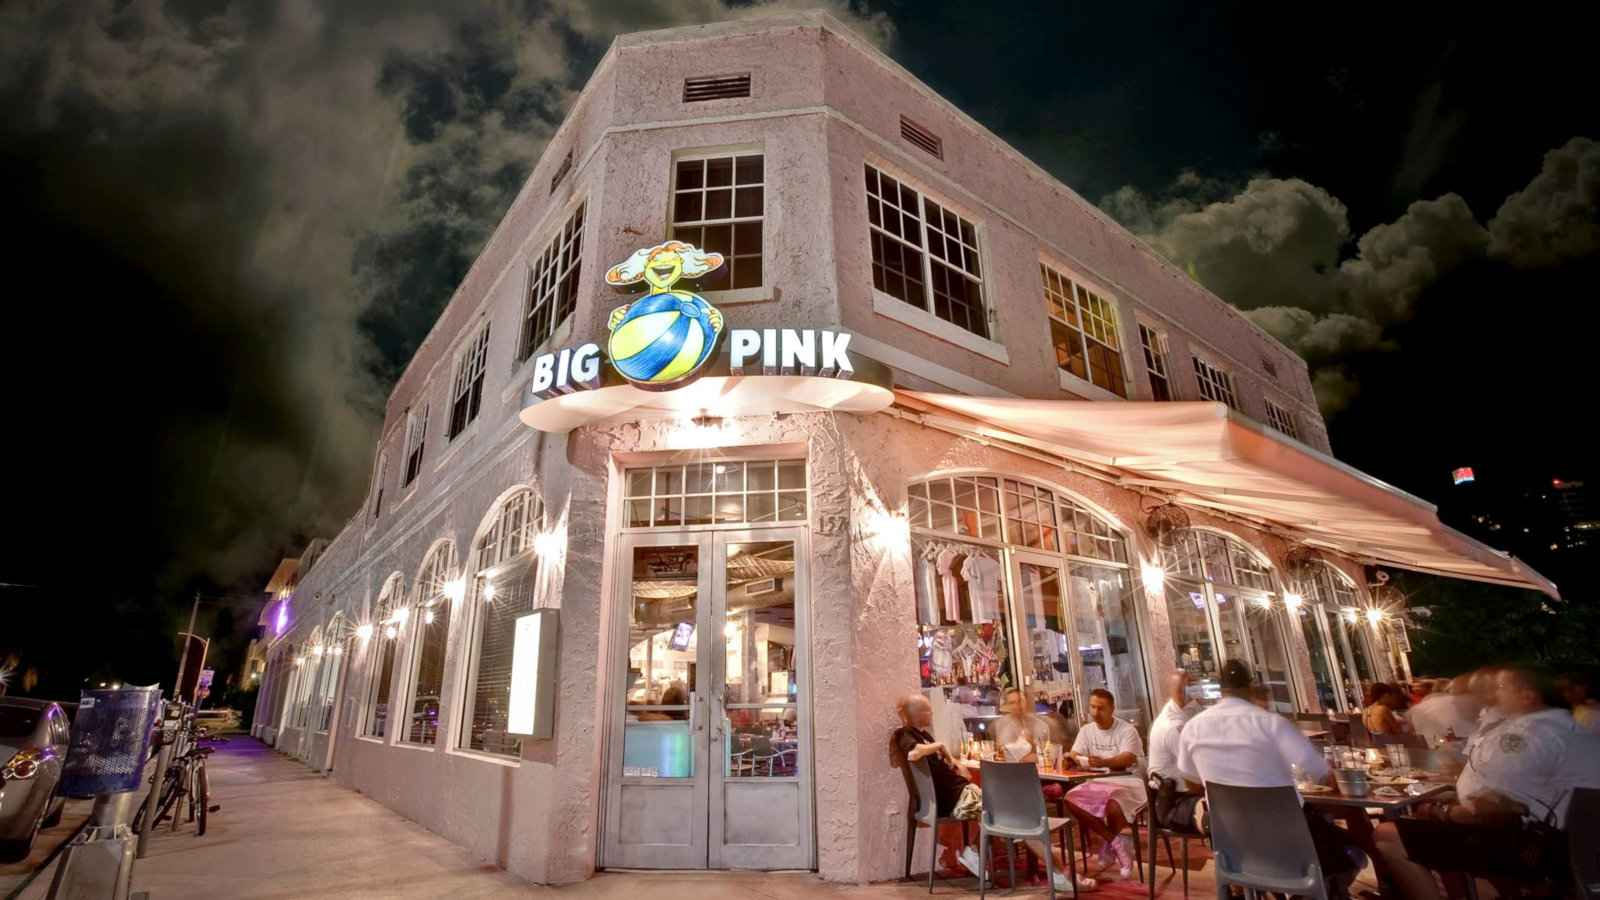 Big Pink is a gay bar and cafe in Miami with amazing brunch and, of course, very pink decor